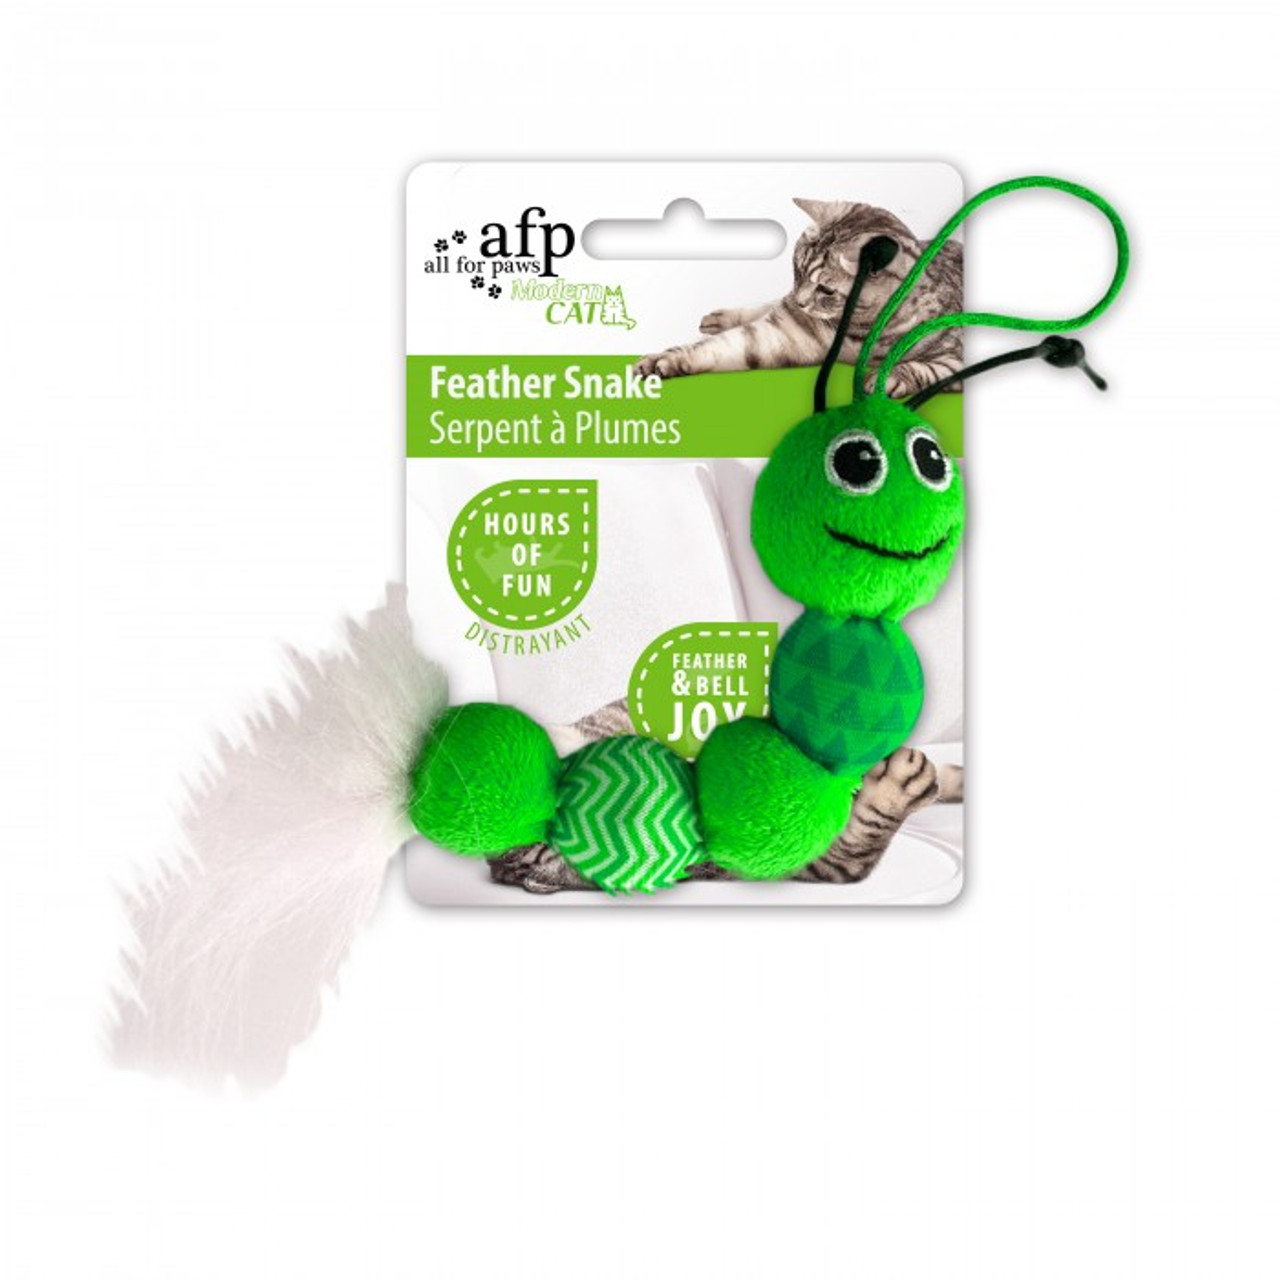 All for Paws Modern Cat Feather Snake Toy - Green